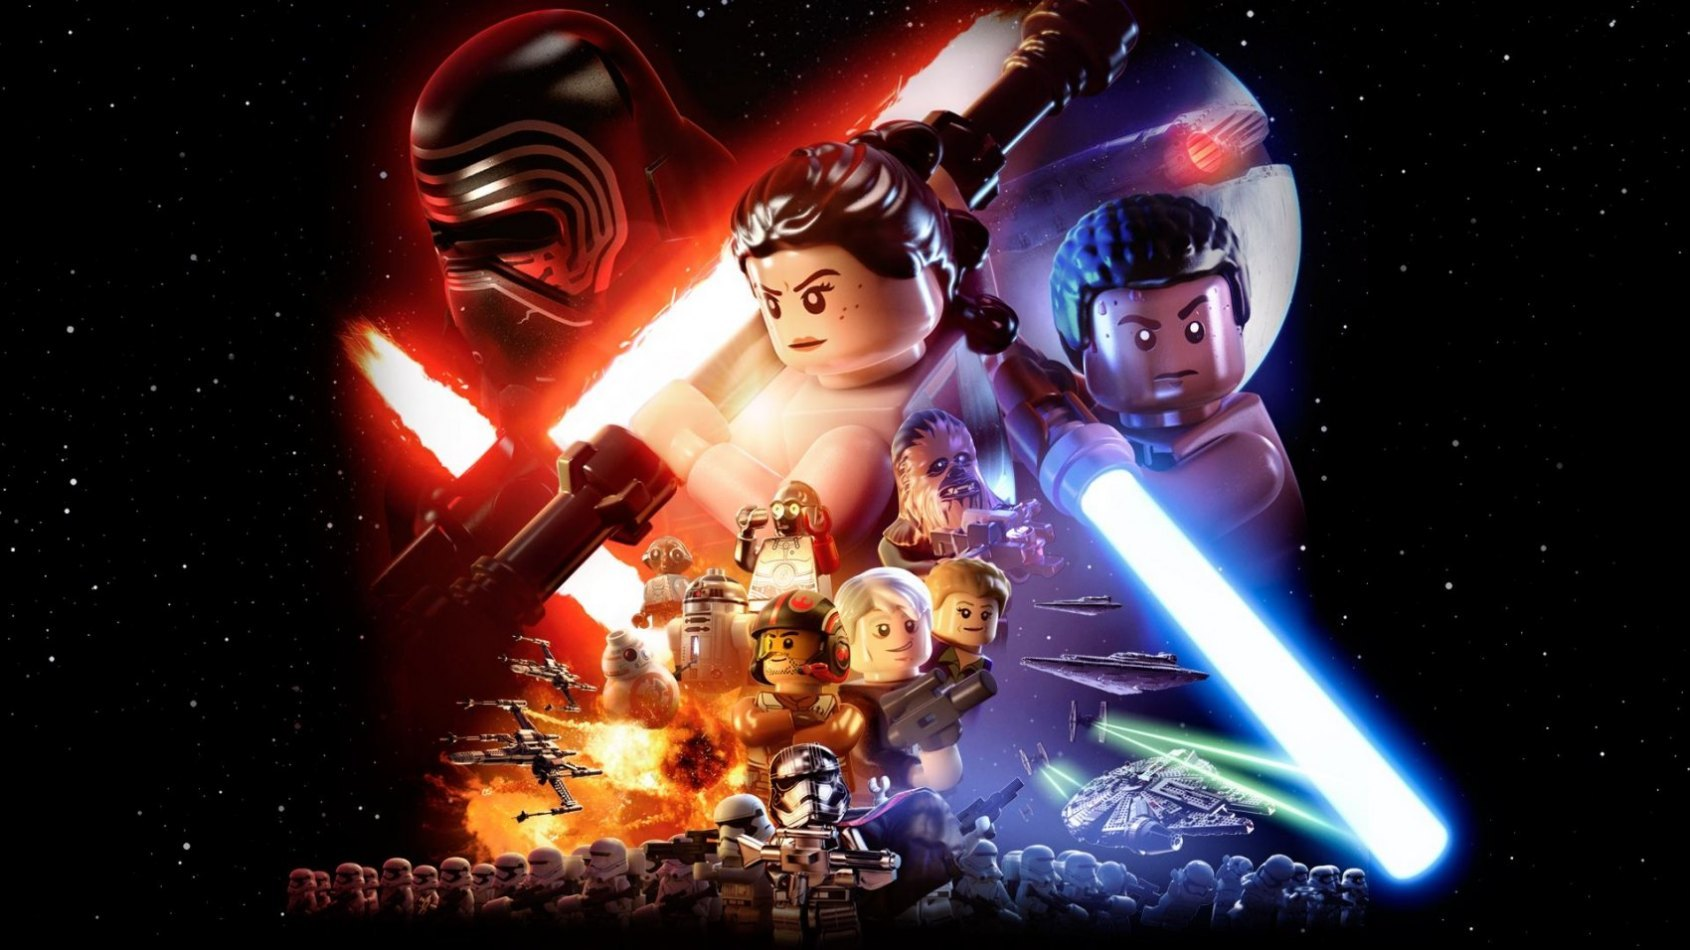 LEGO Star Wars The Force Awakens : Un nouveau DLC révélé